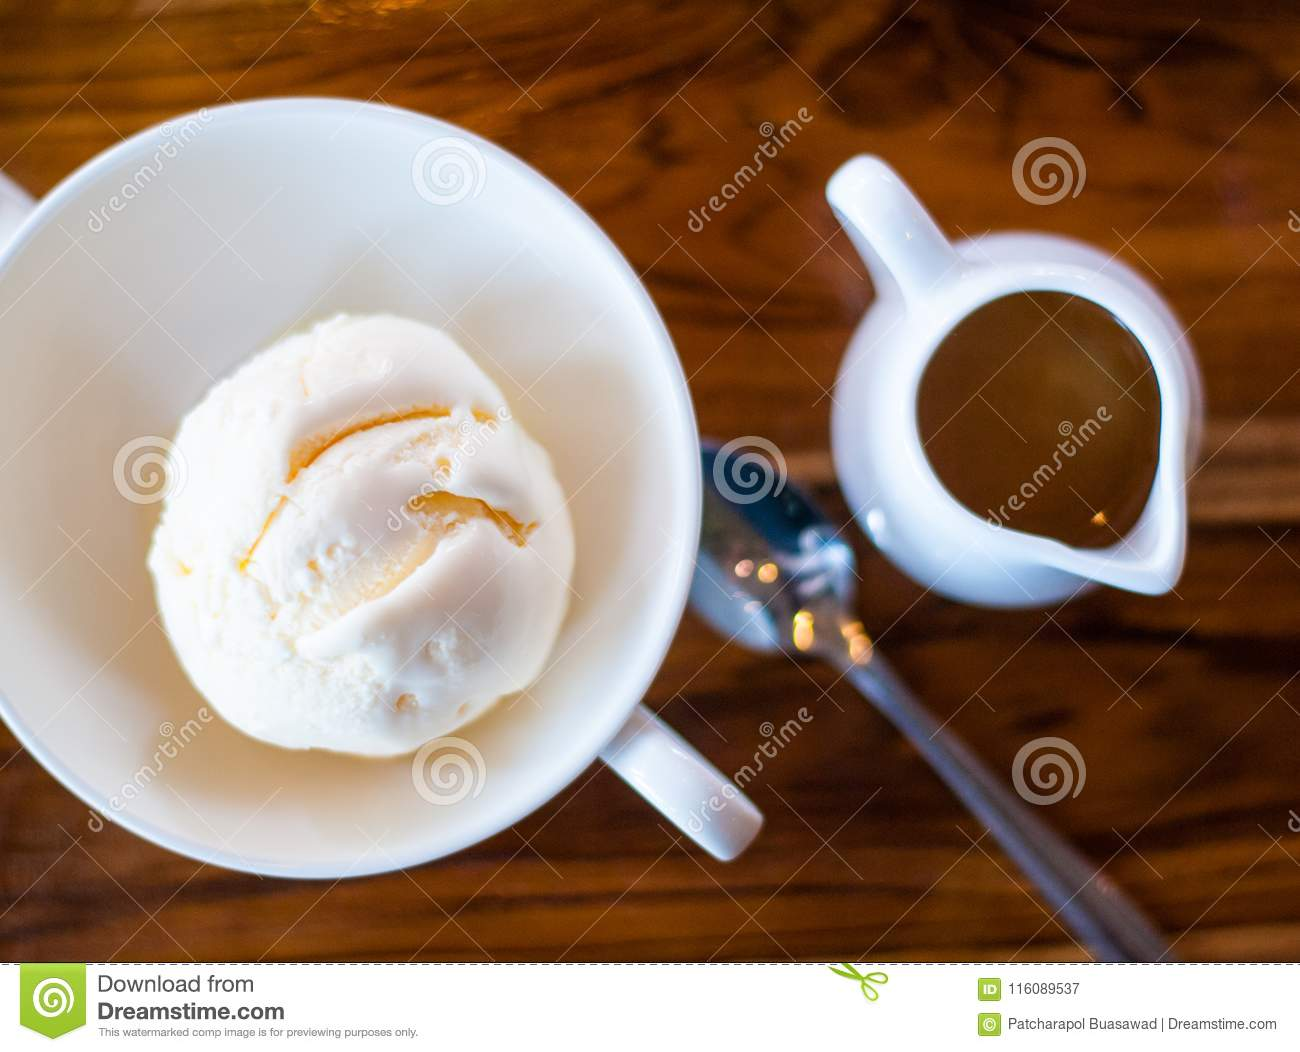 Vanilla icecream and a mug of espresso shot is placed together on coffee shop table